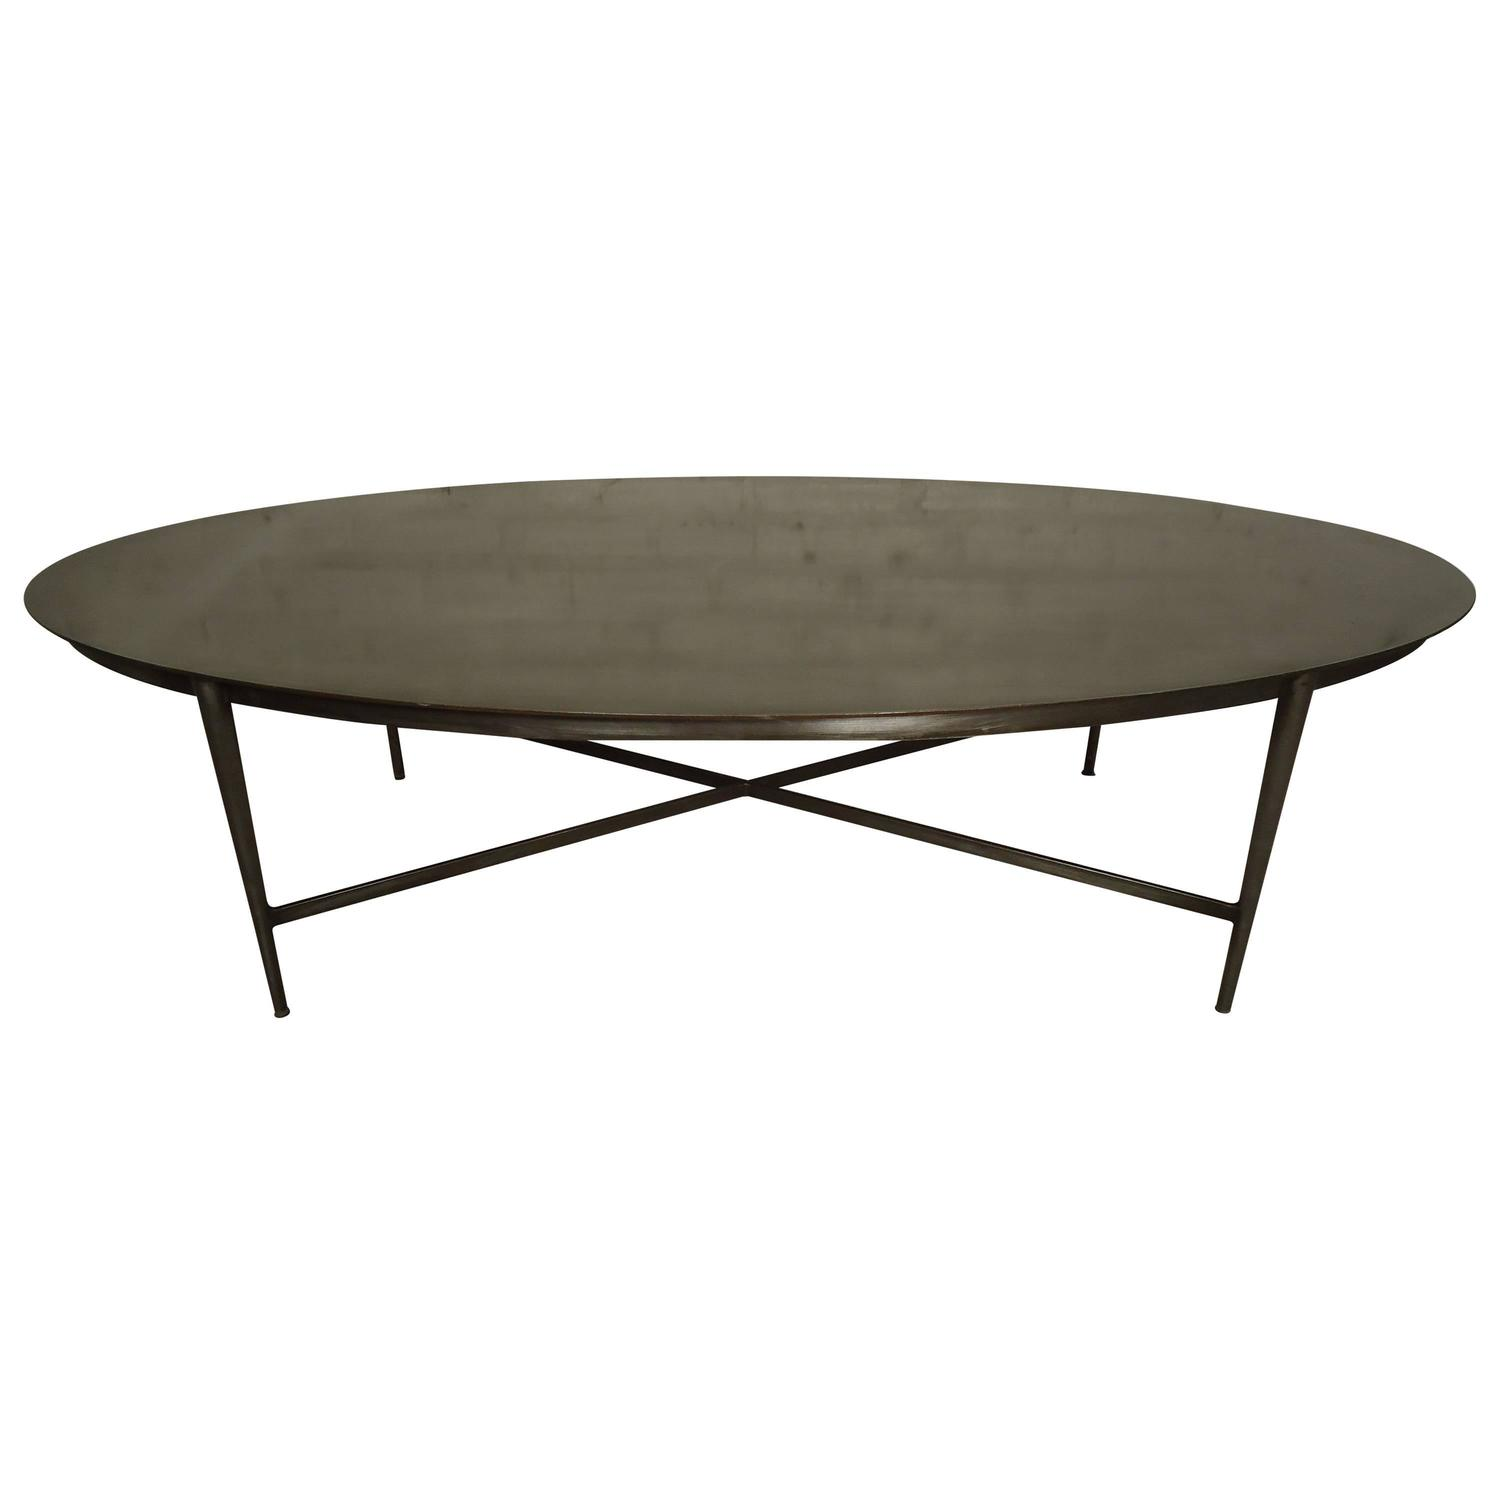 mid century industrial style oval coffee table at 1stdibs With oval industrial coffee table